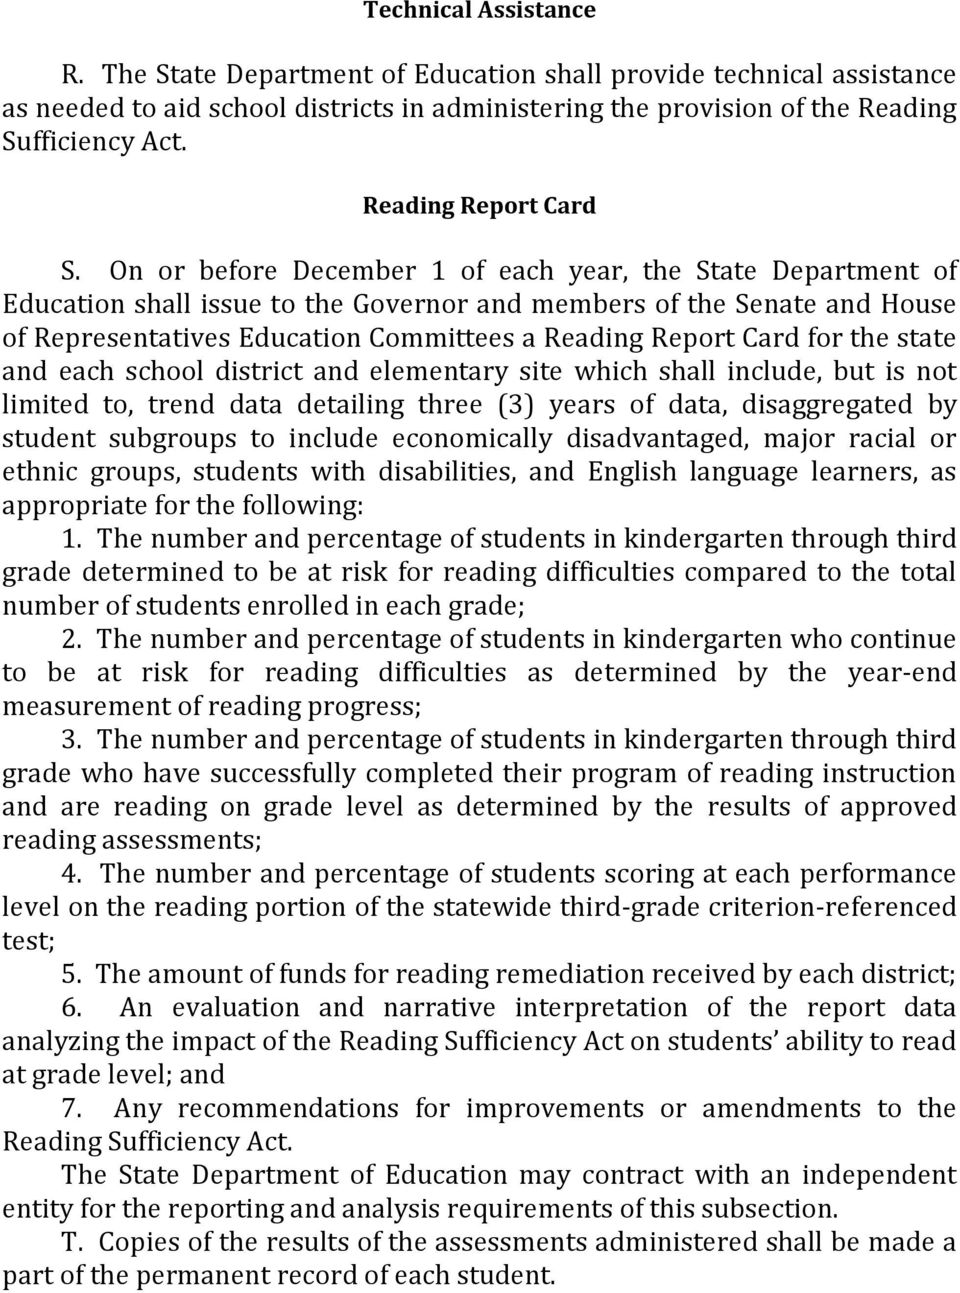 On or before December 1 of each year, the State Department of Education shall issue to the Governor and members of the Senate and House of Representatives Education Committees a Reading Report Card